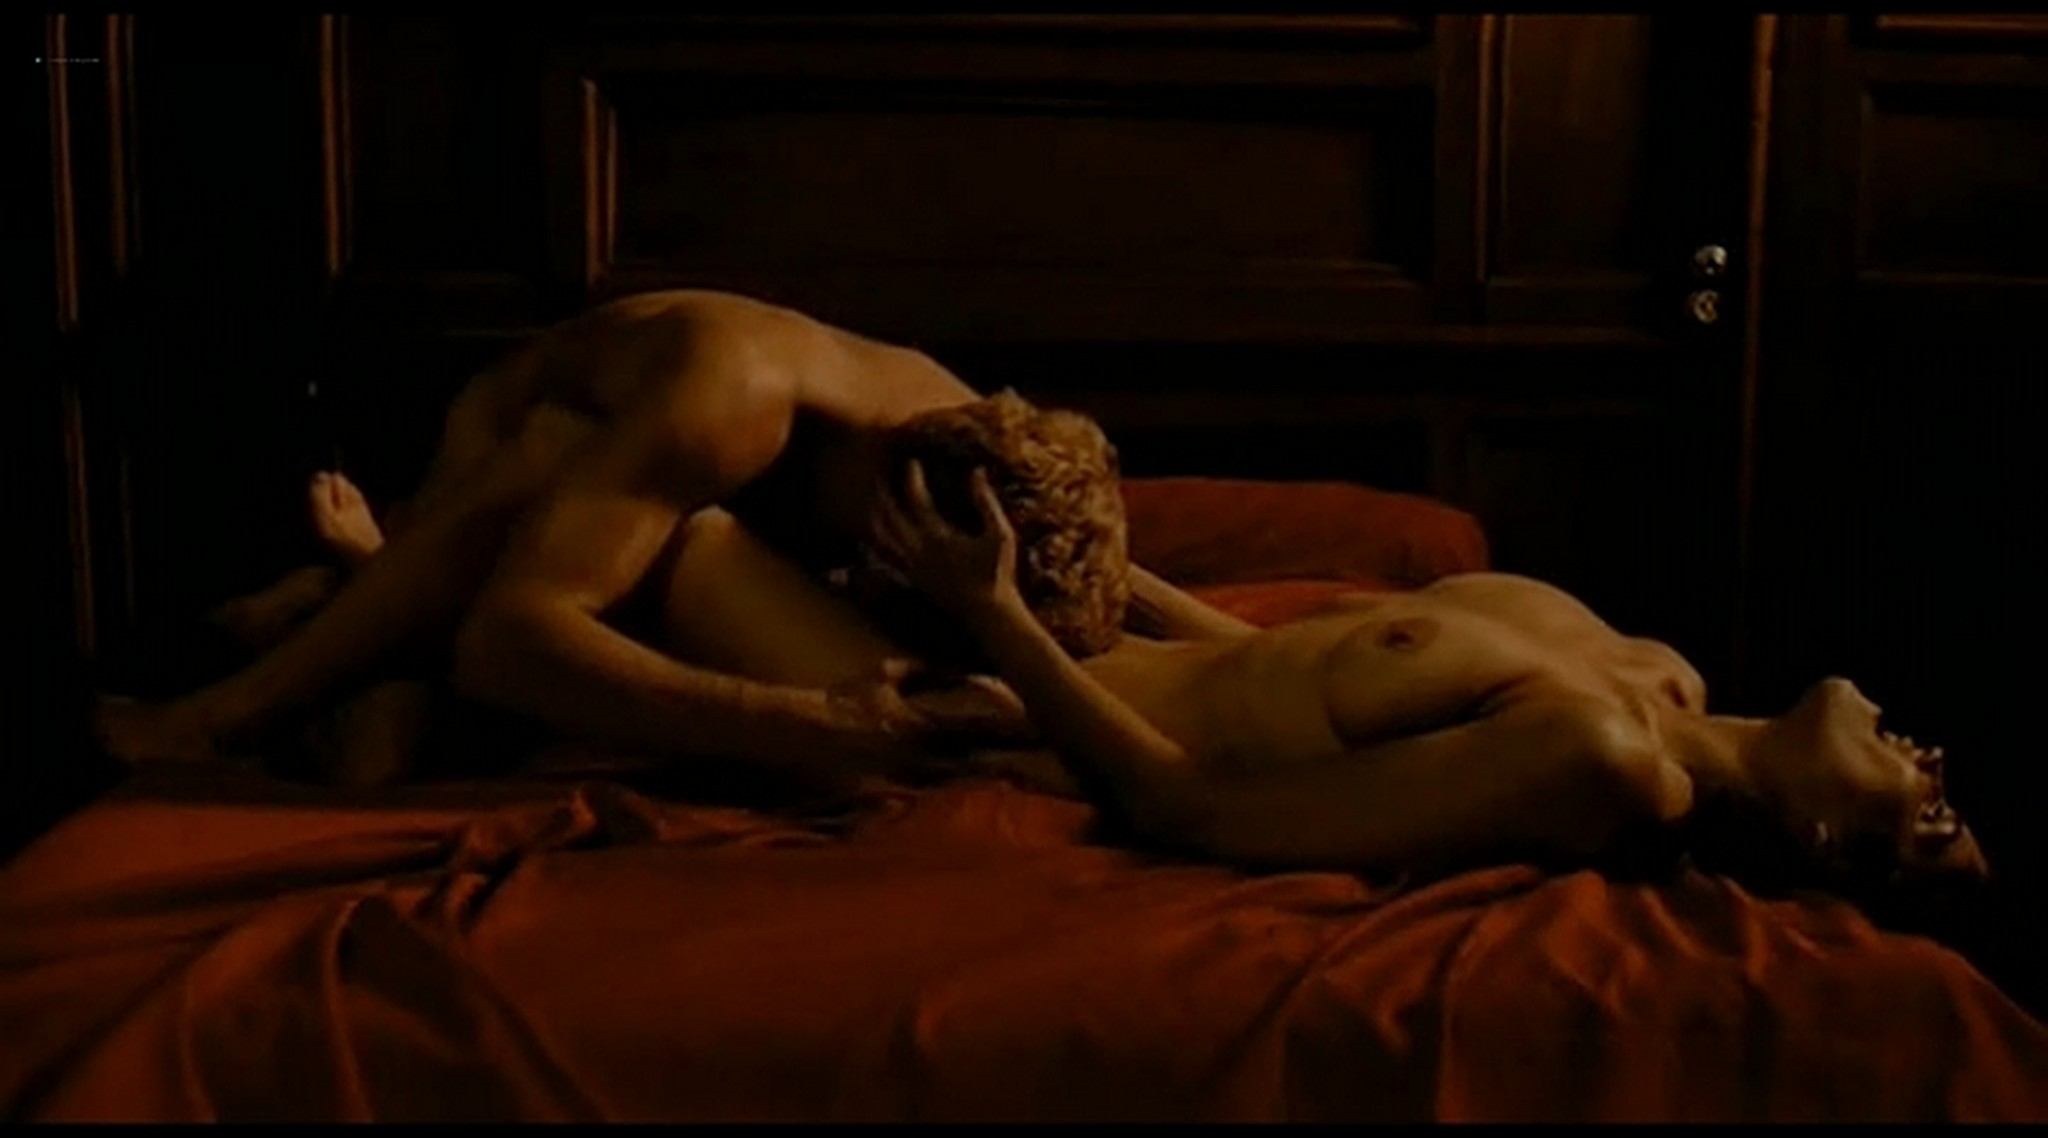 Alice Taglioni nude topless and hot sex Grande ecole FR 2004 DVDRip 3